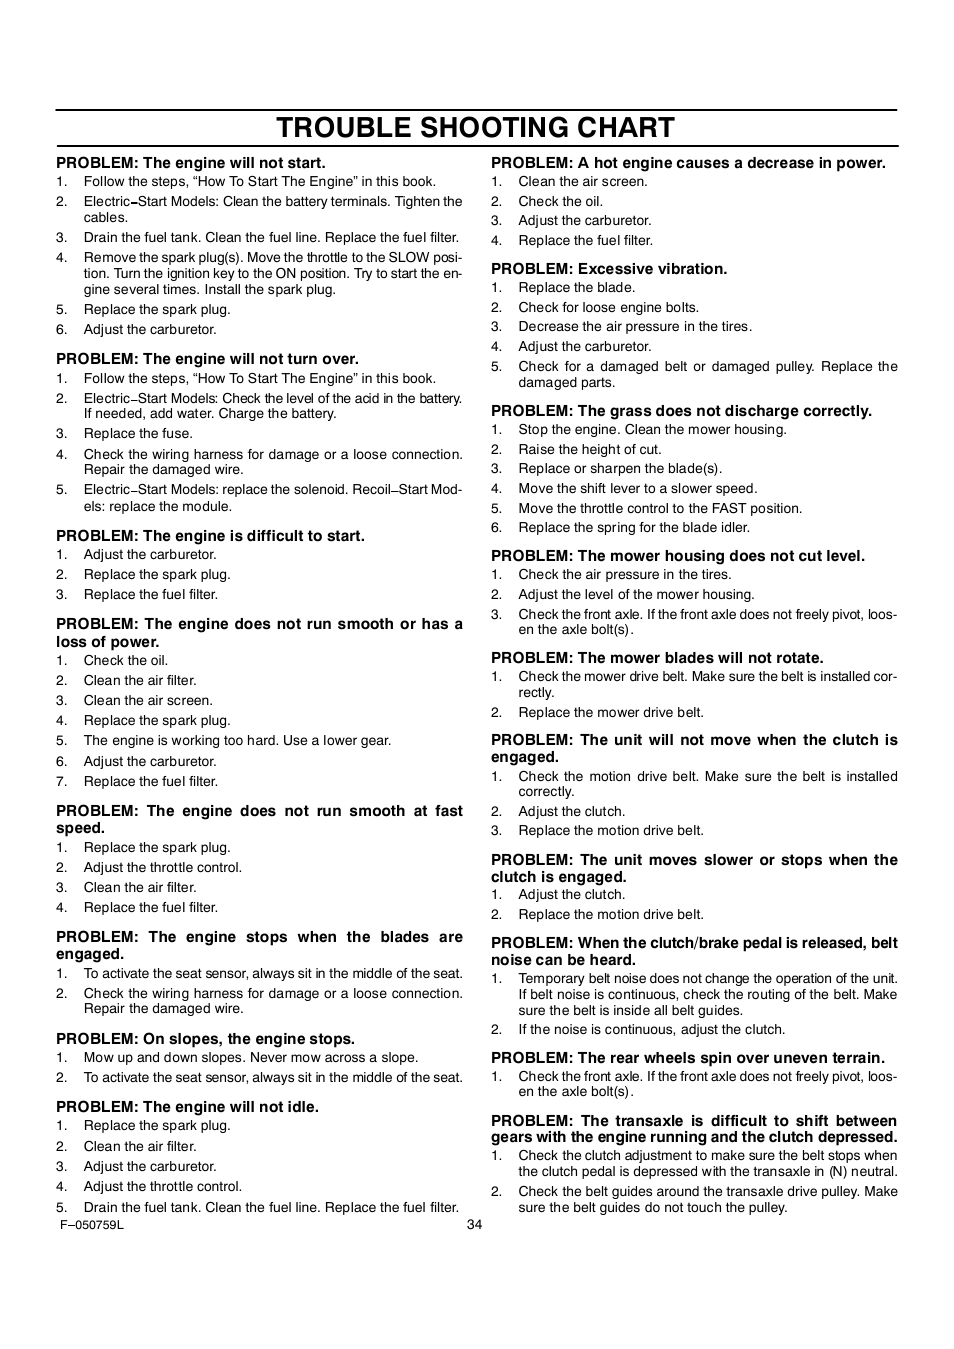 Trouble shooting chart | Rover Clipper 405012x108A User Manual | Page 34 /  52